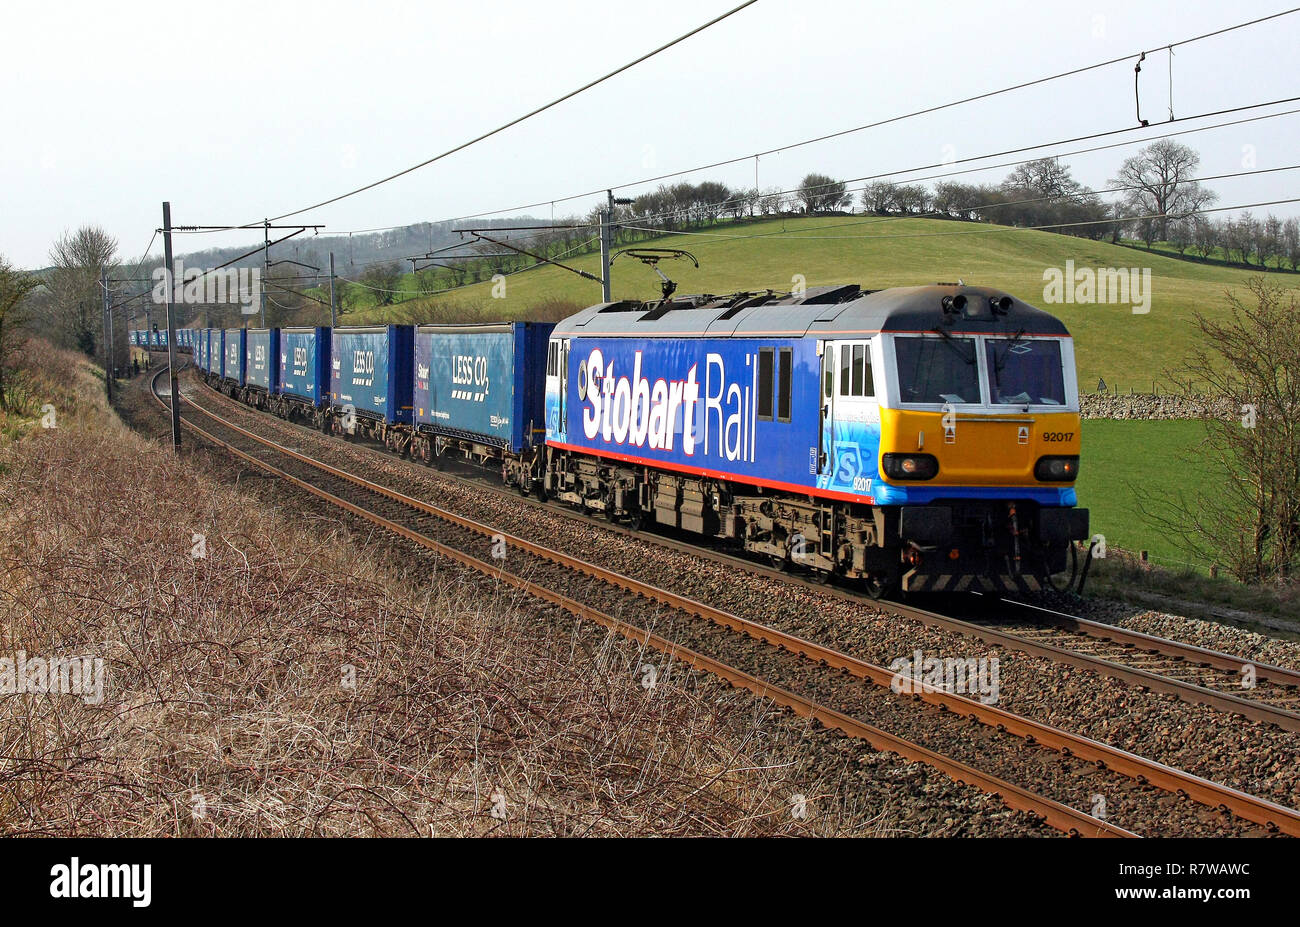 92017 heads past Well Heads in the Stobart Rail livery named as Bart the Engine. - Stock Image